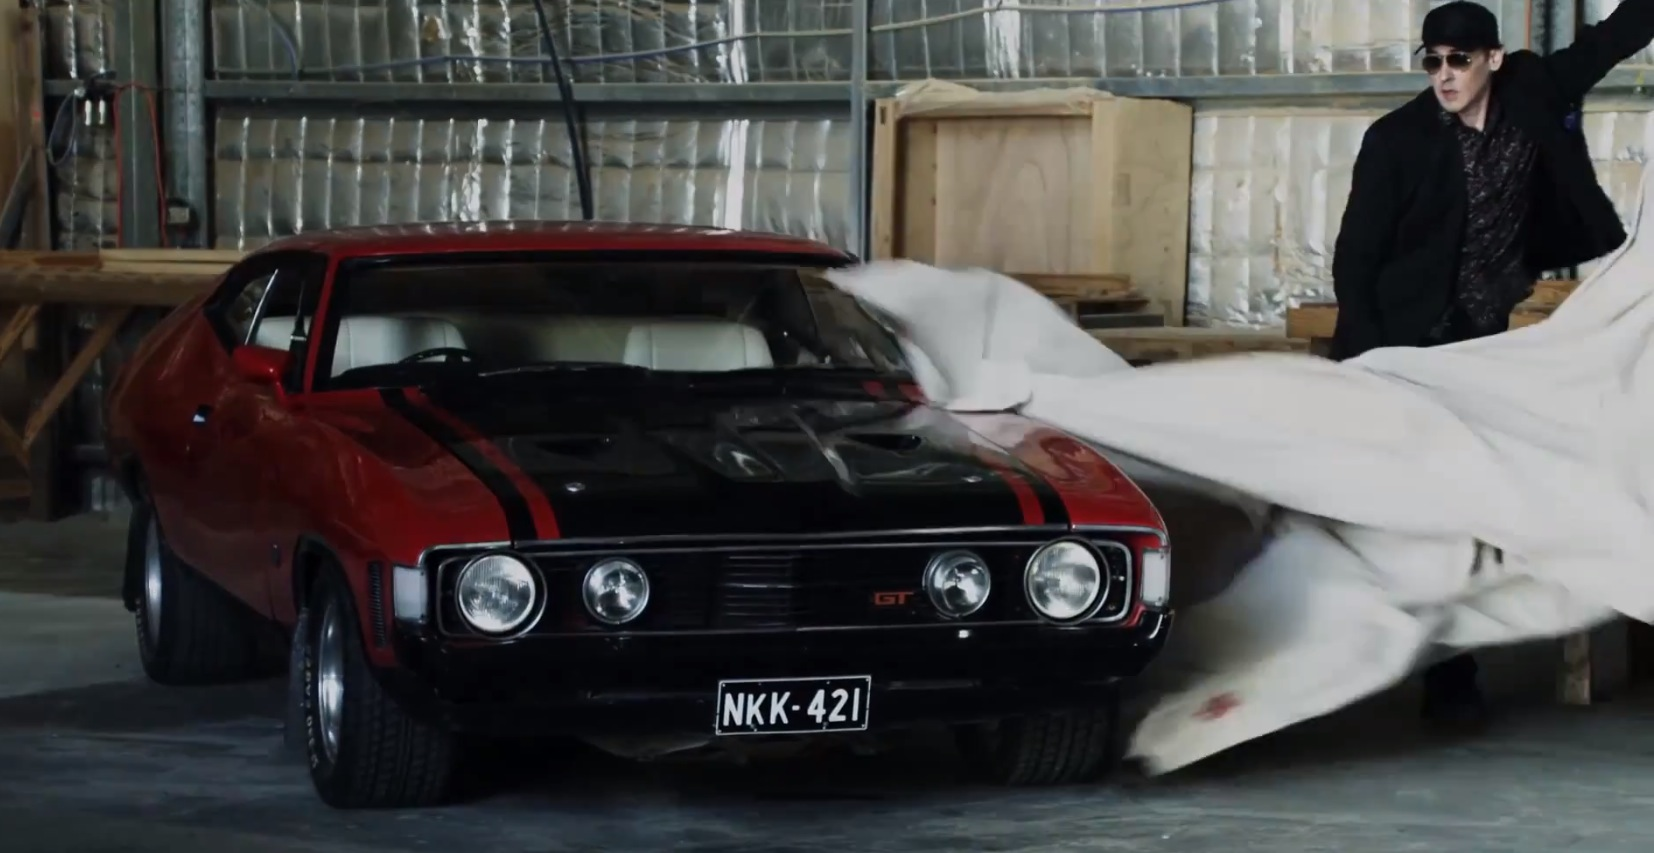 John Cusack Uses Mustang And Falcon As Getaway Cars In Drive Hard